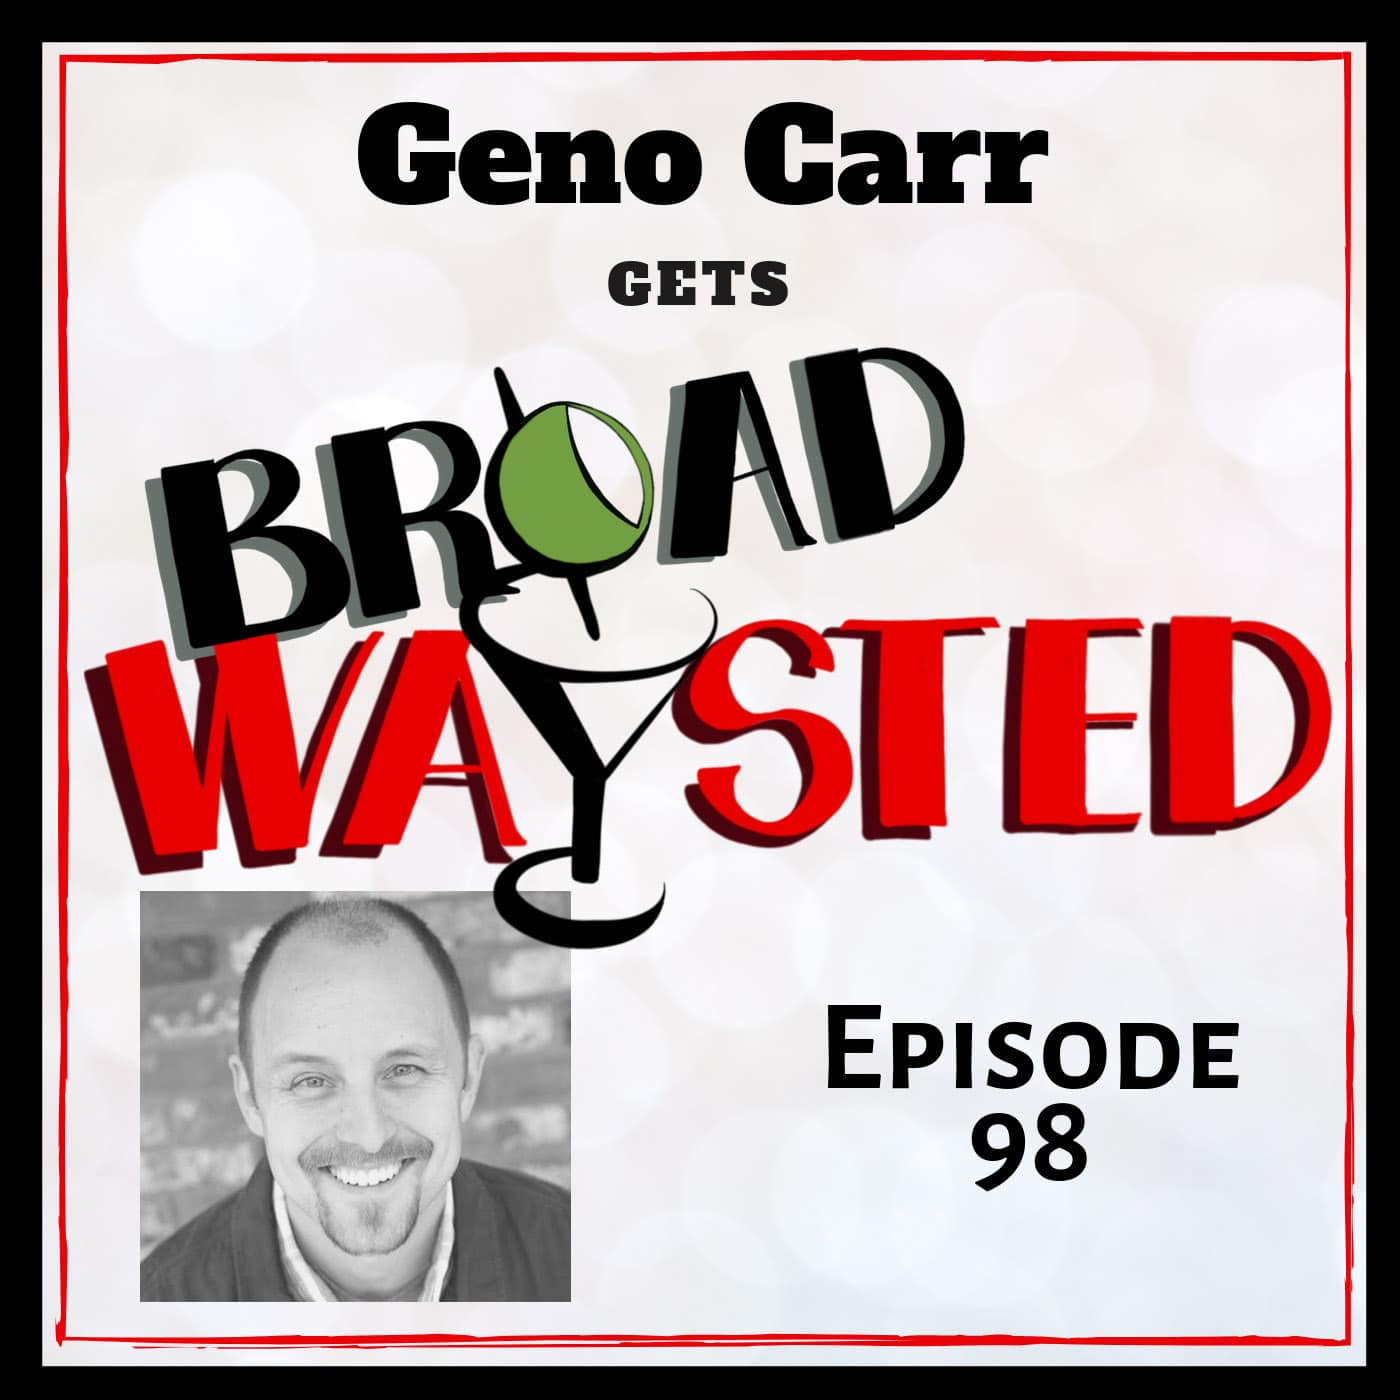 Broadwaysted Ep 98 Geno Carr